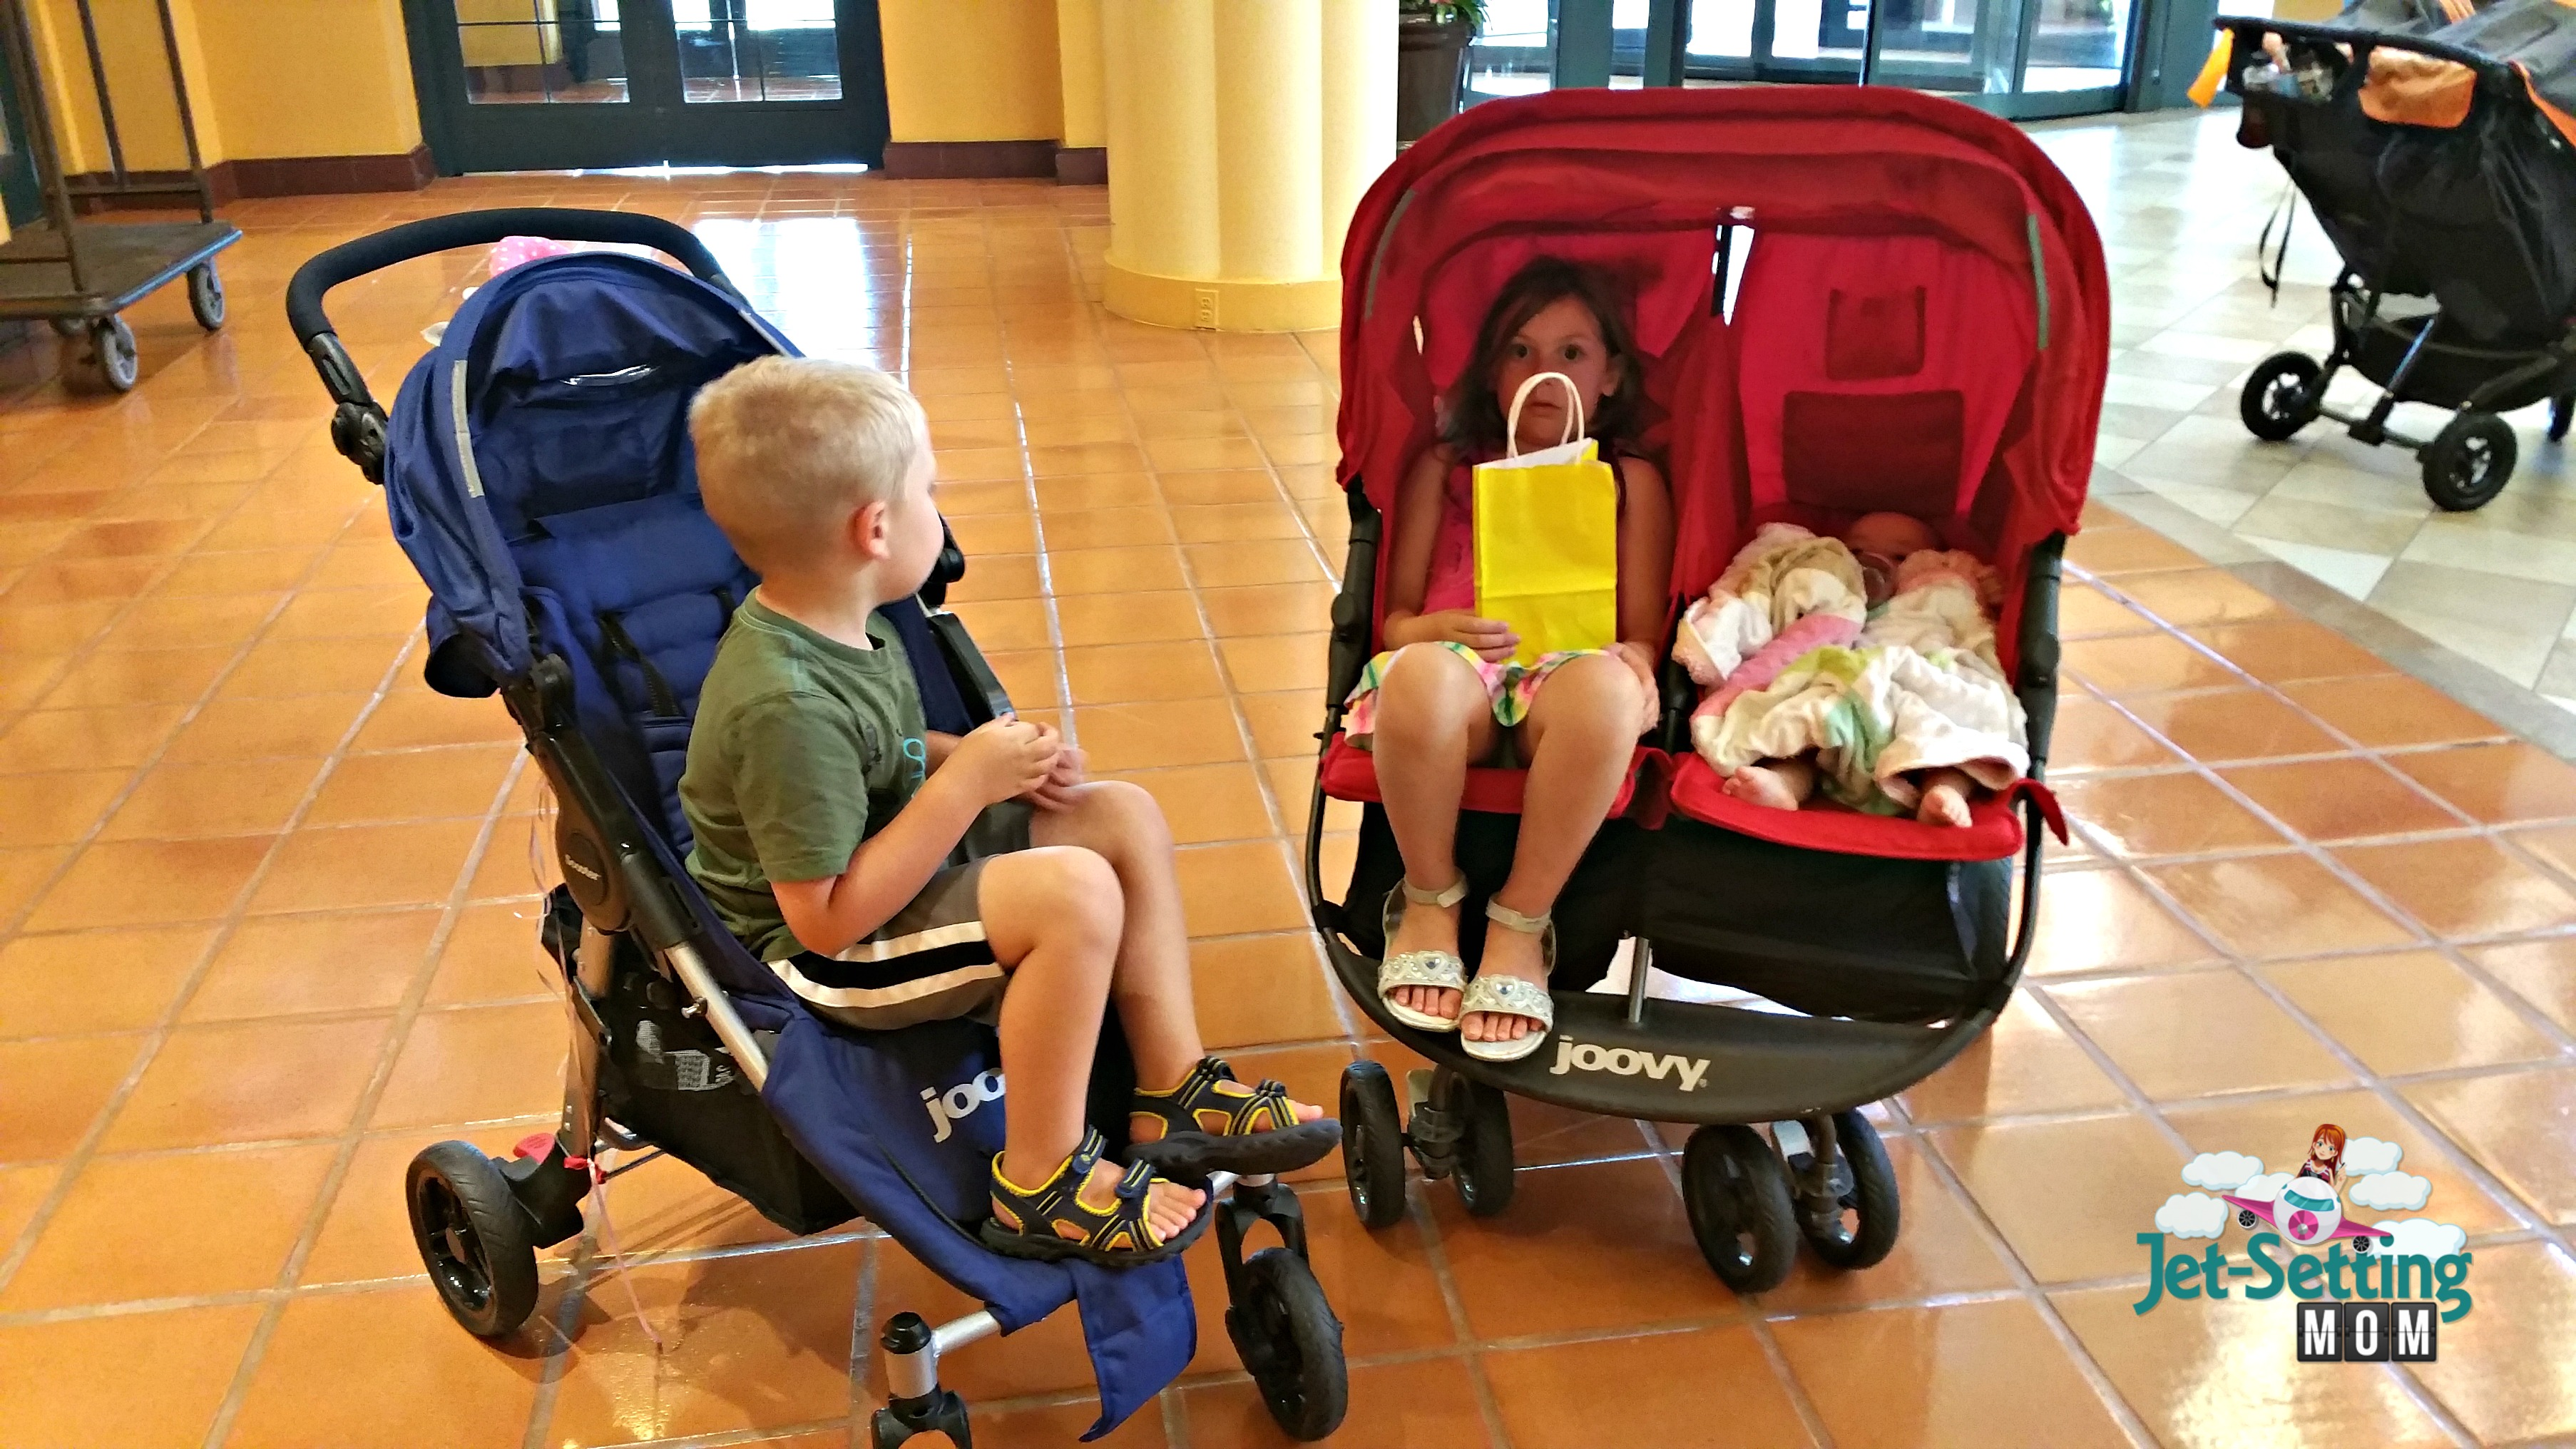 always bring a stroller to Disney!